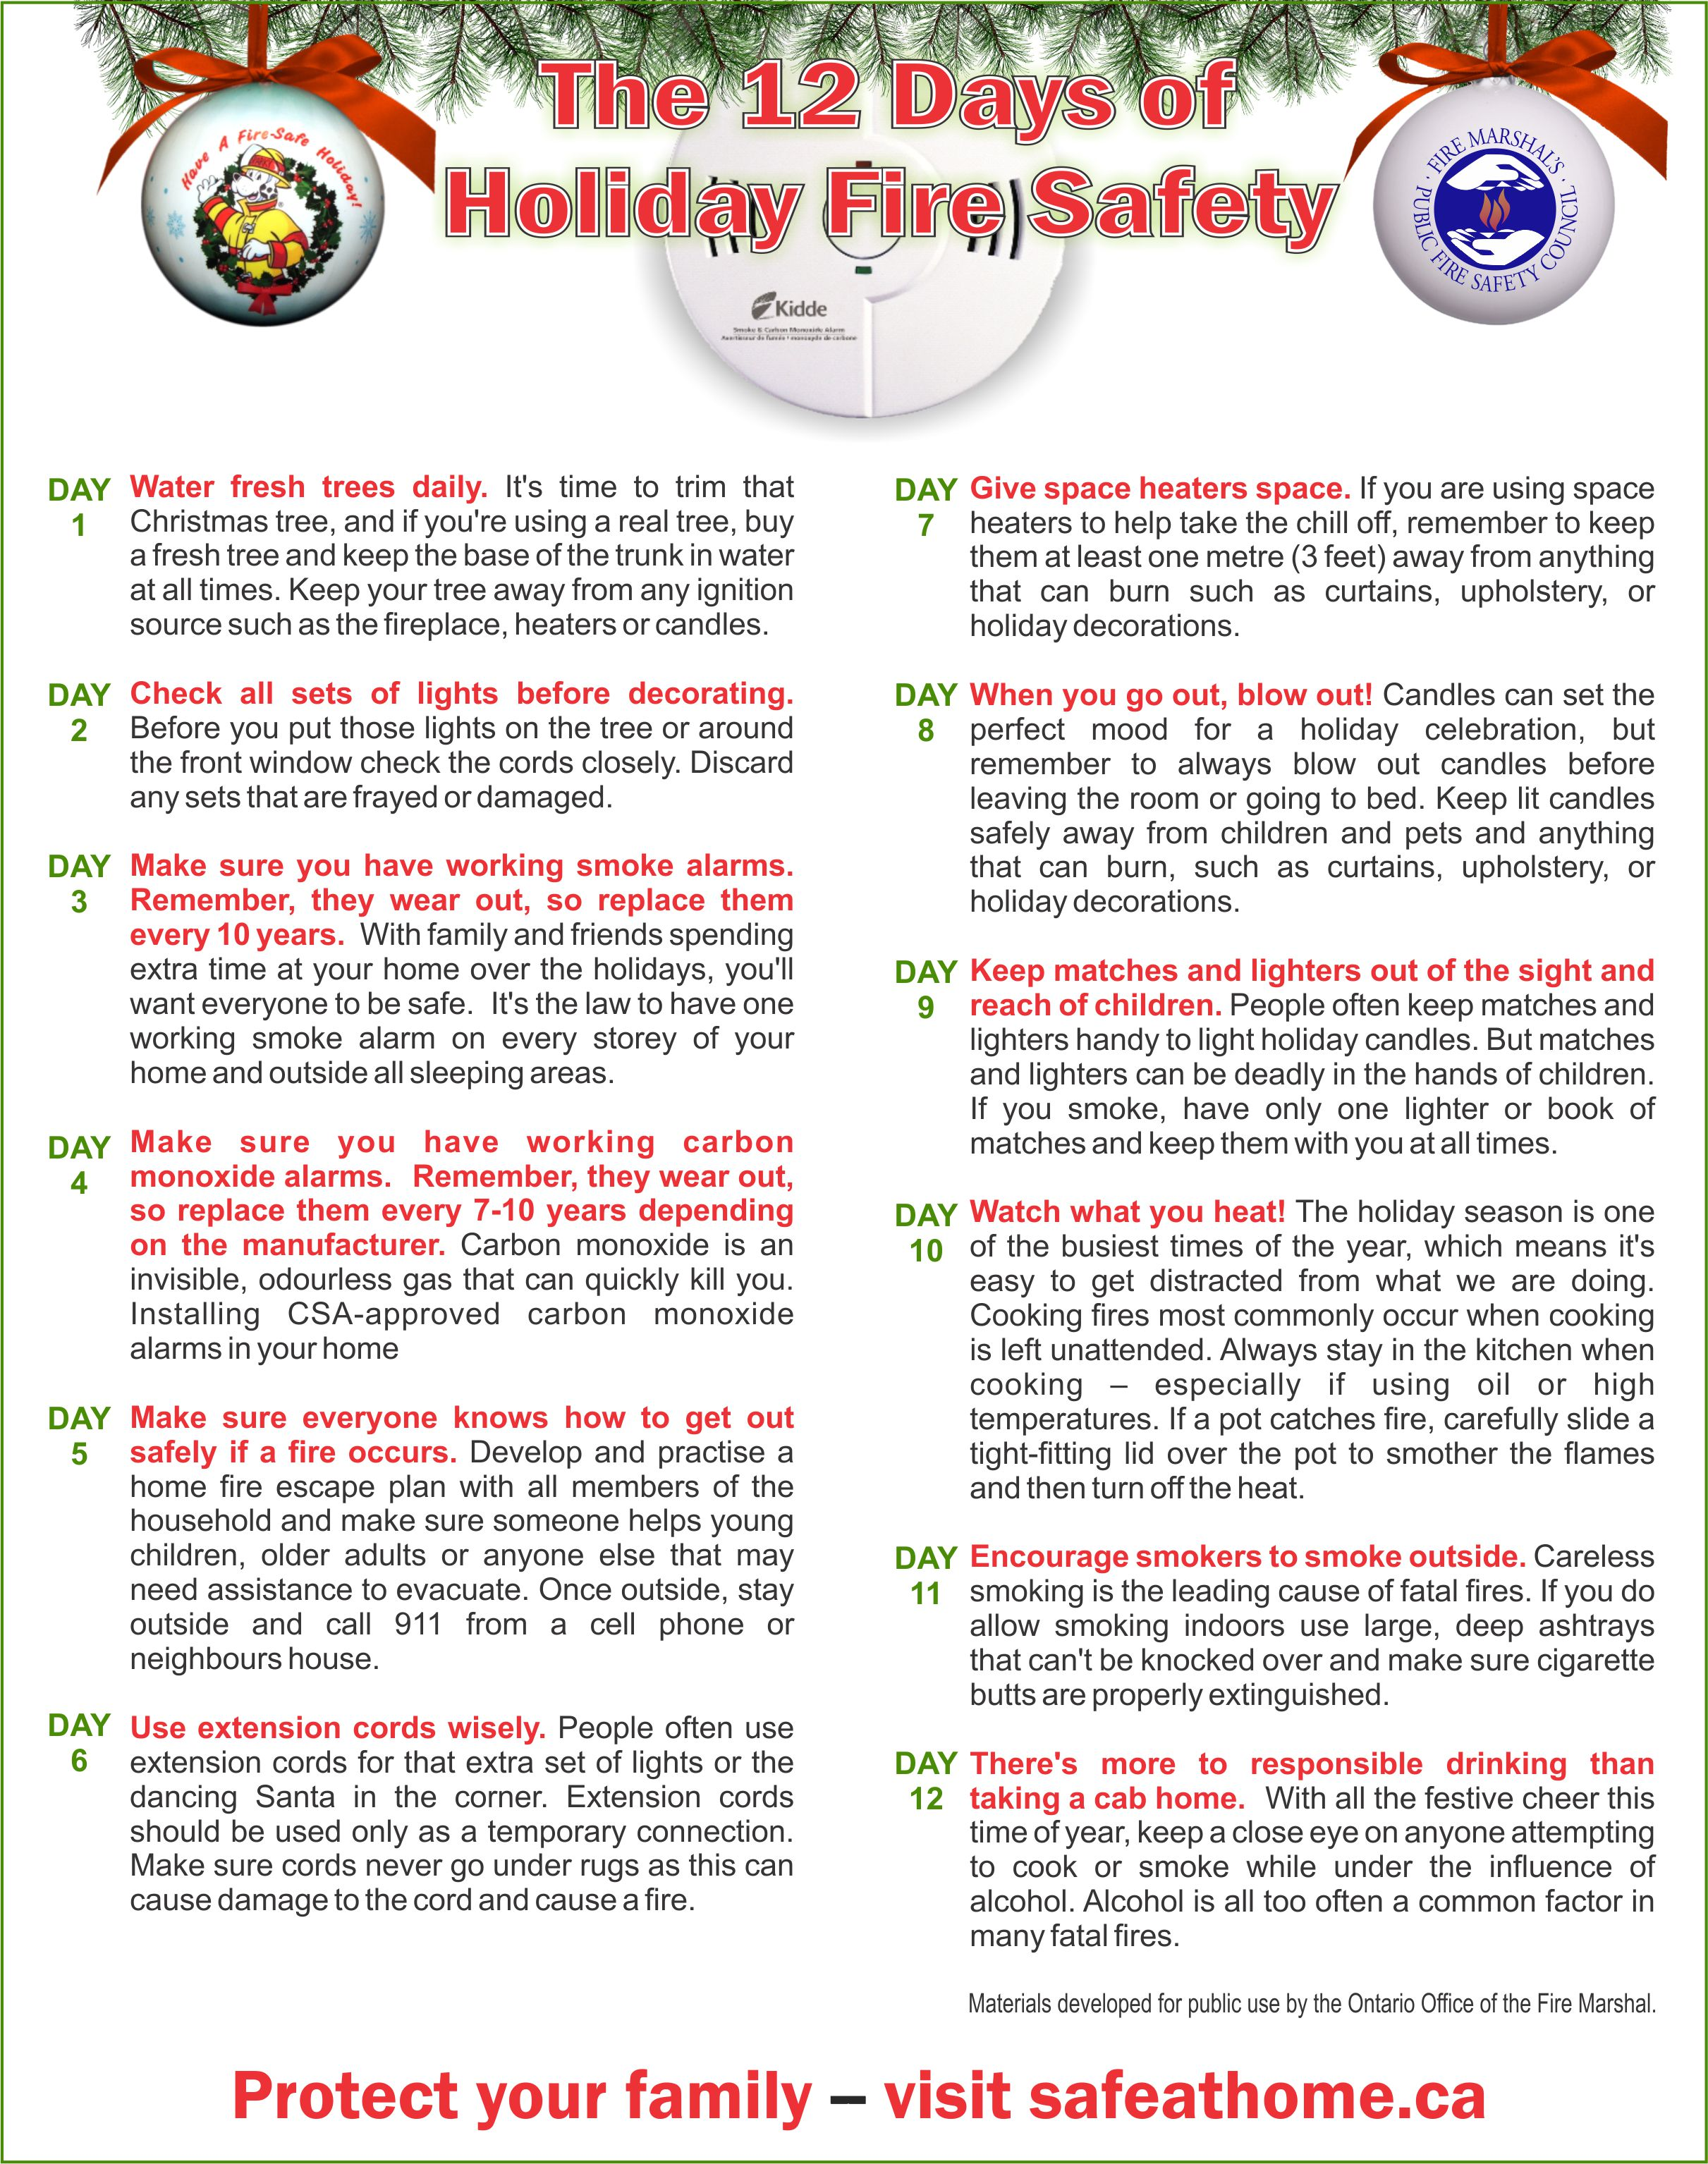 12 days of holiday fire safety tips